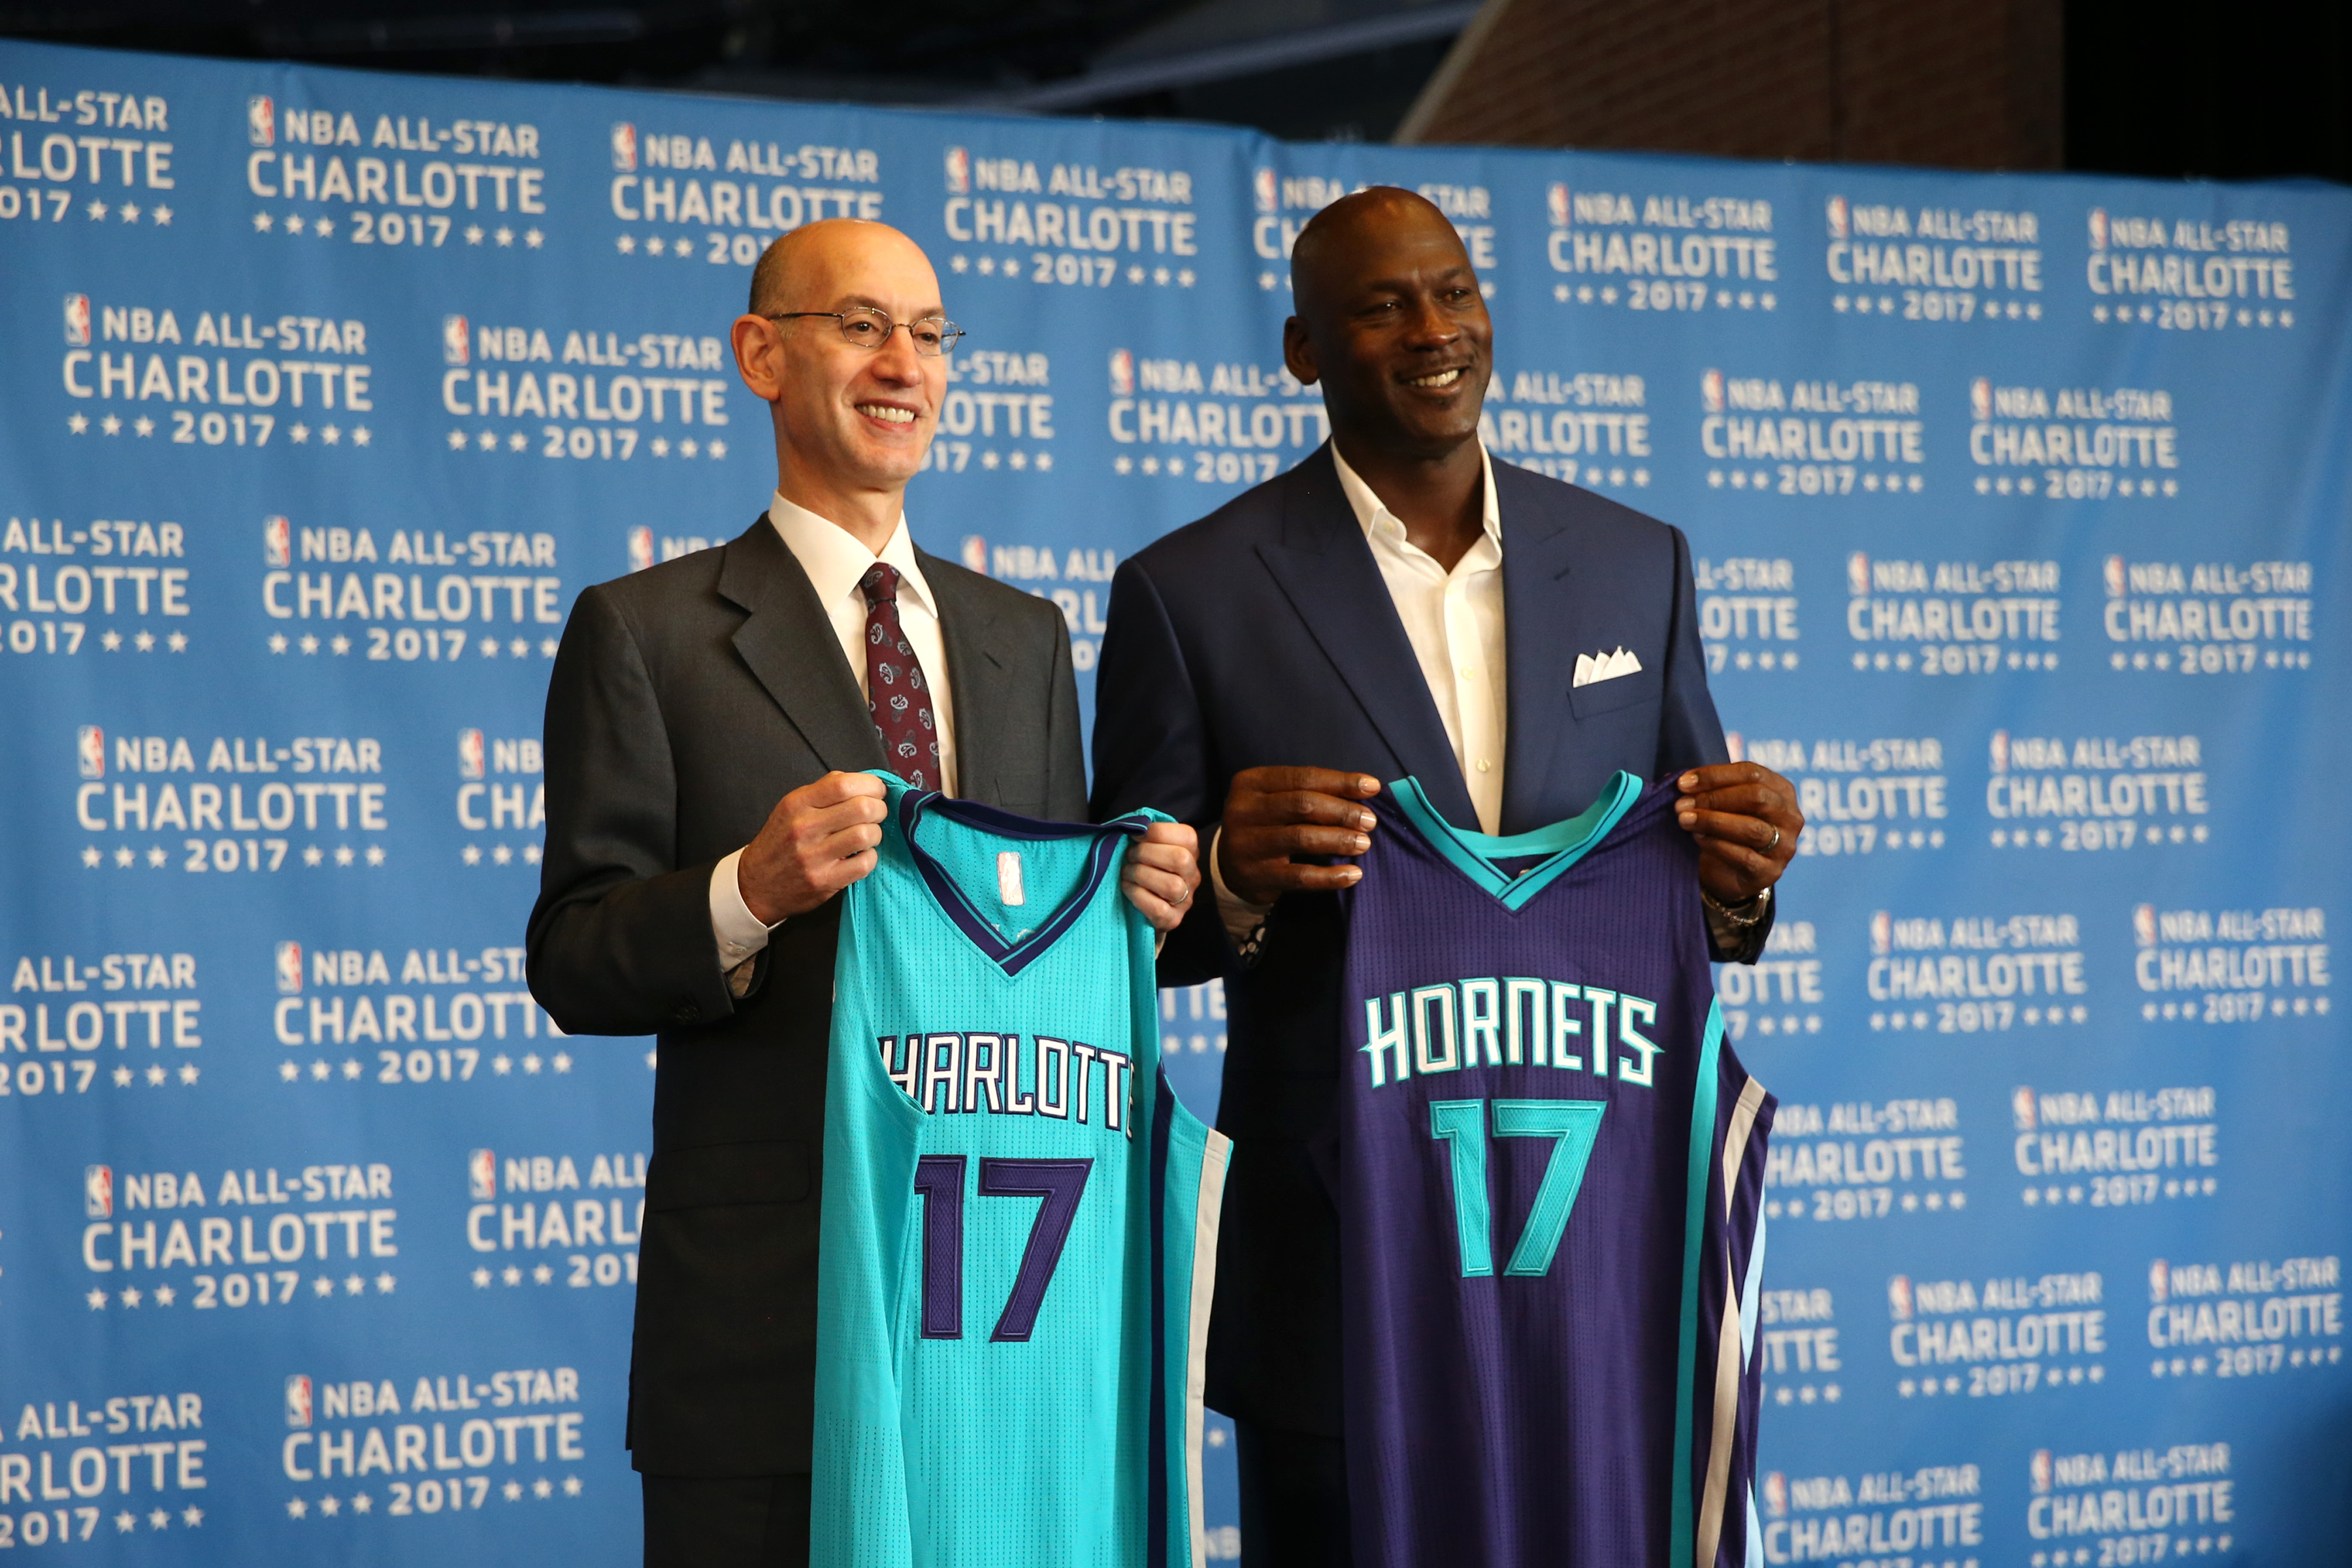 All-Star 2017 annoucement with the Charlotte Hornets